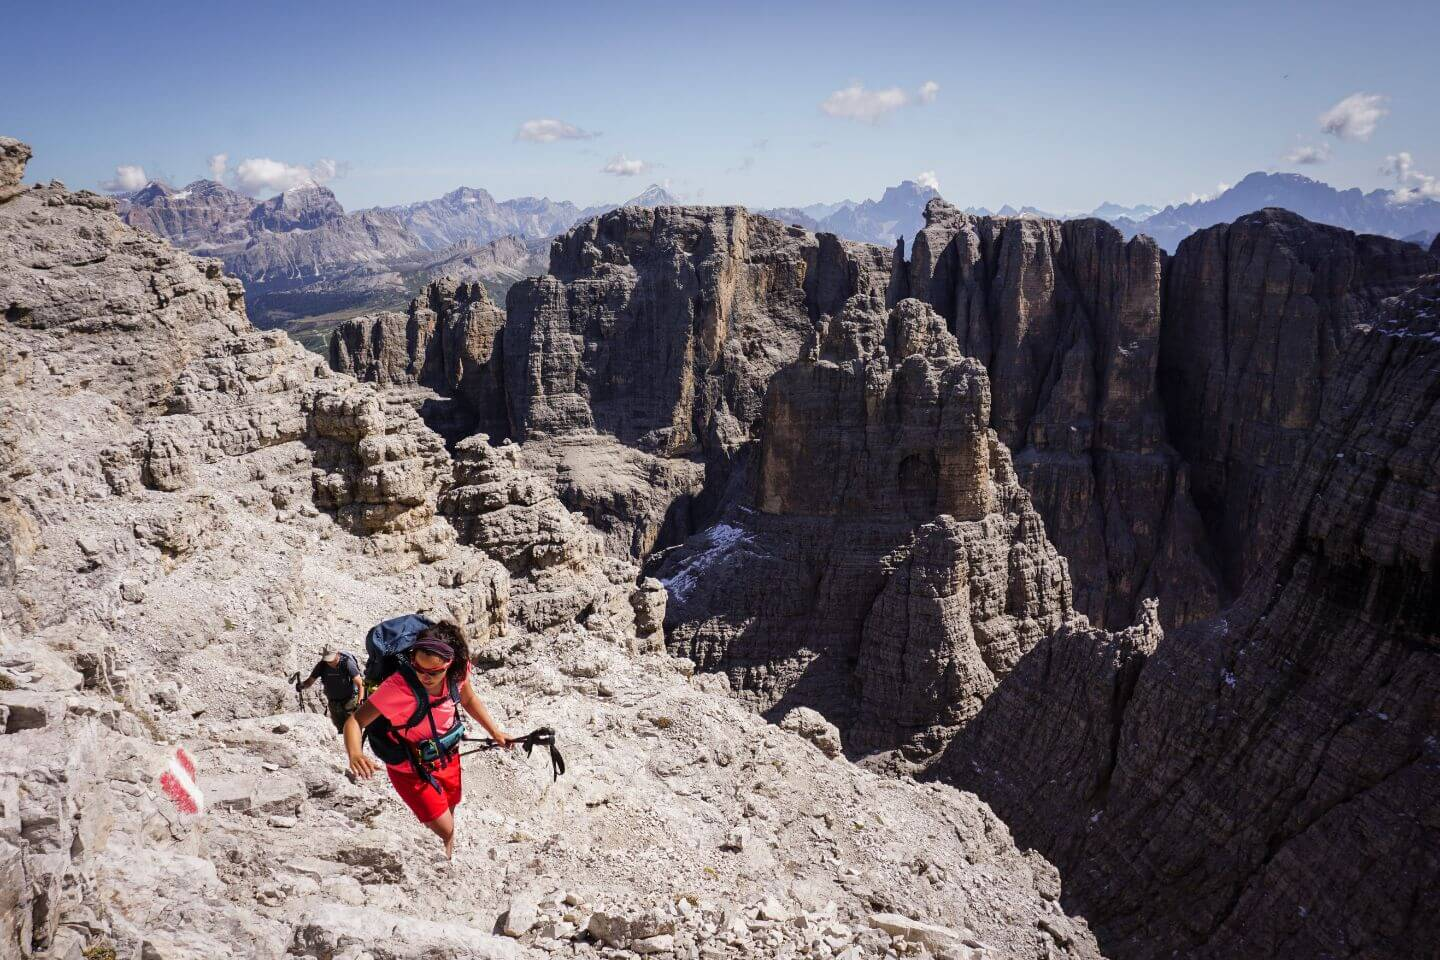 Hiking up to Cima Pisciadù, Sella Group, Italian Dolomites